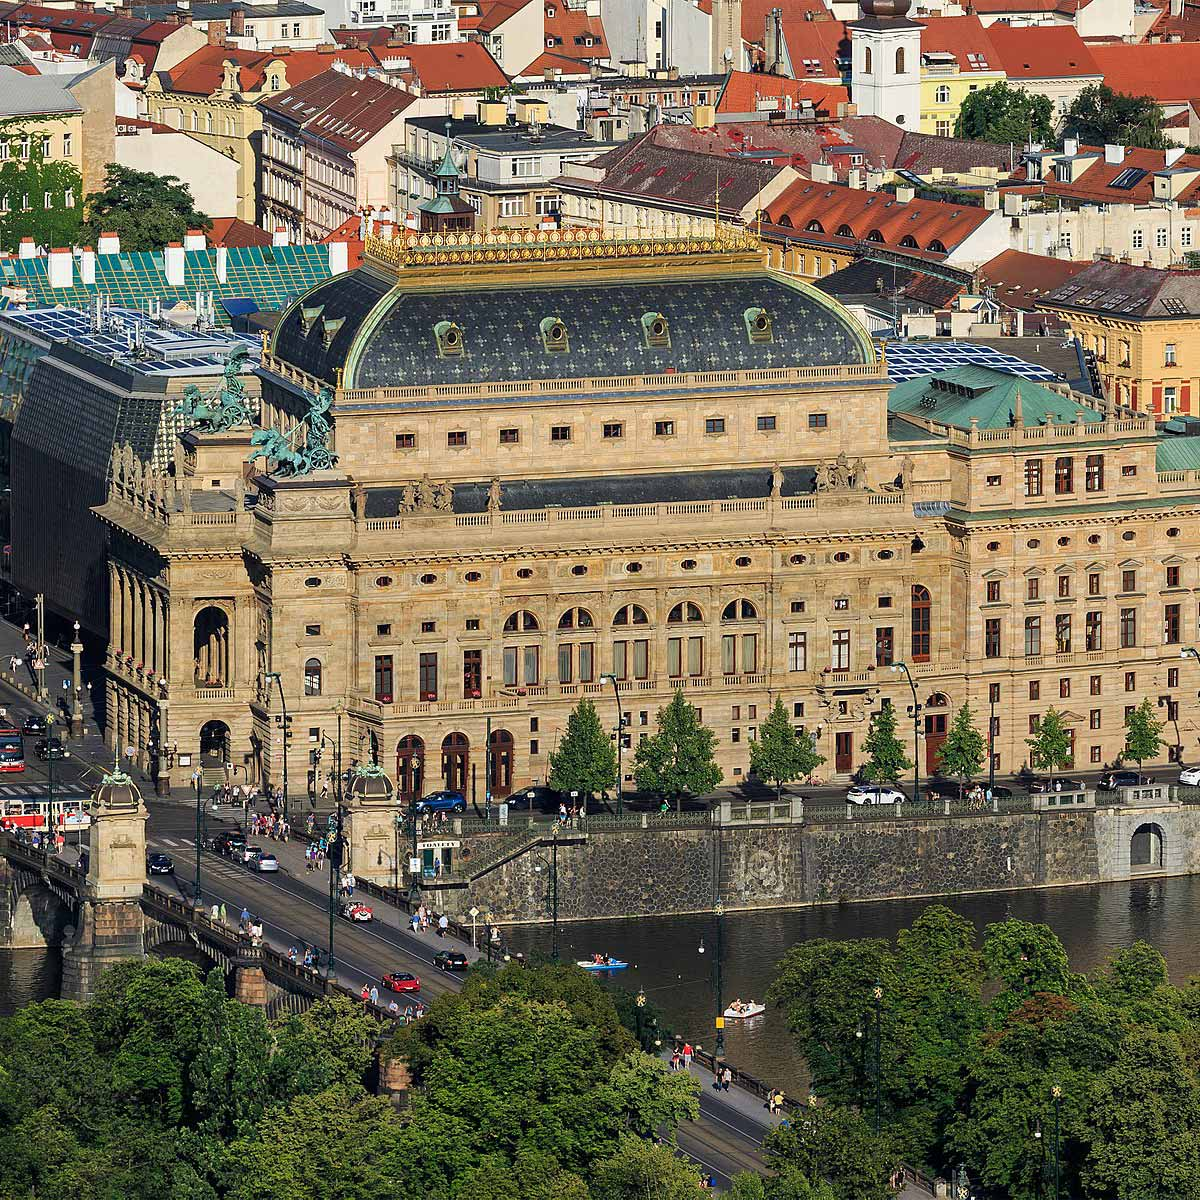 12. National Theatre